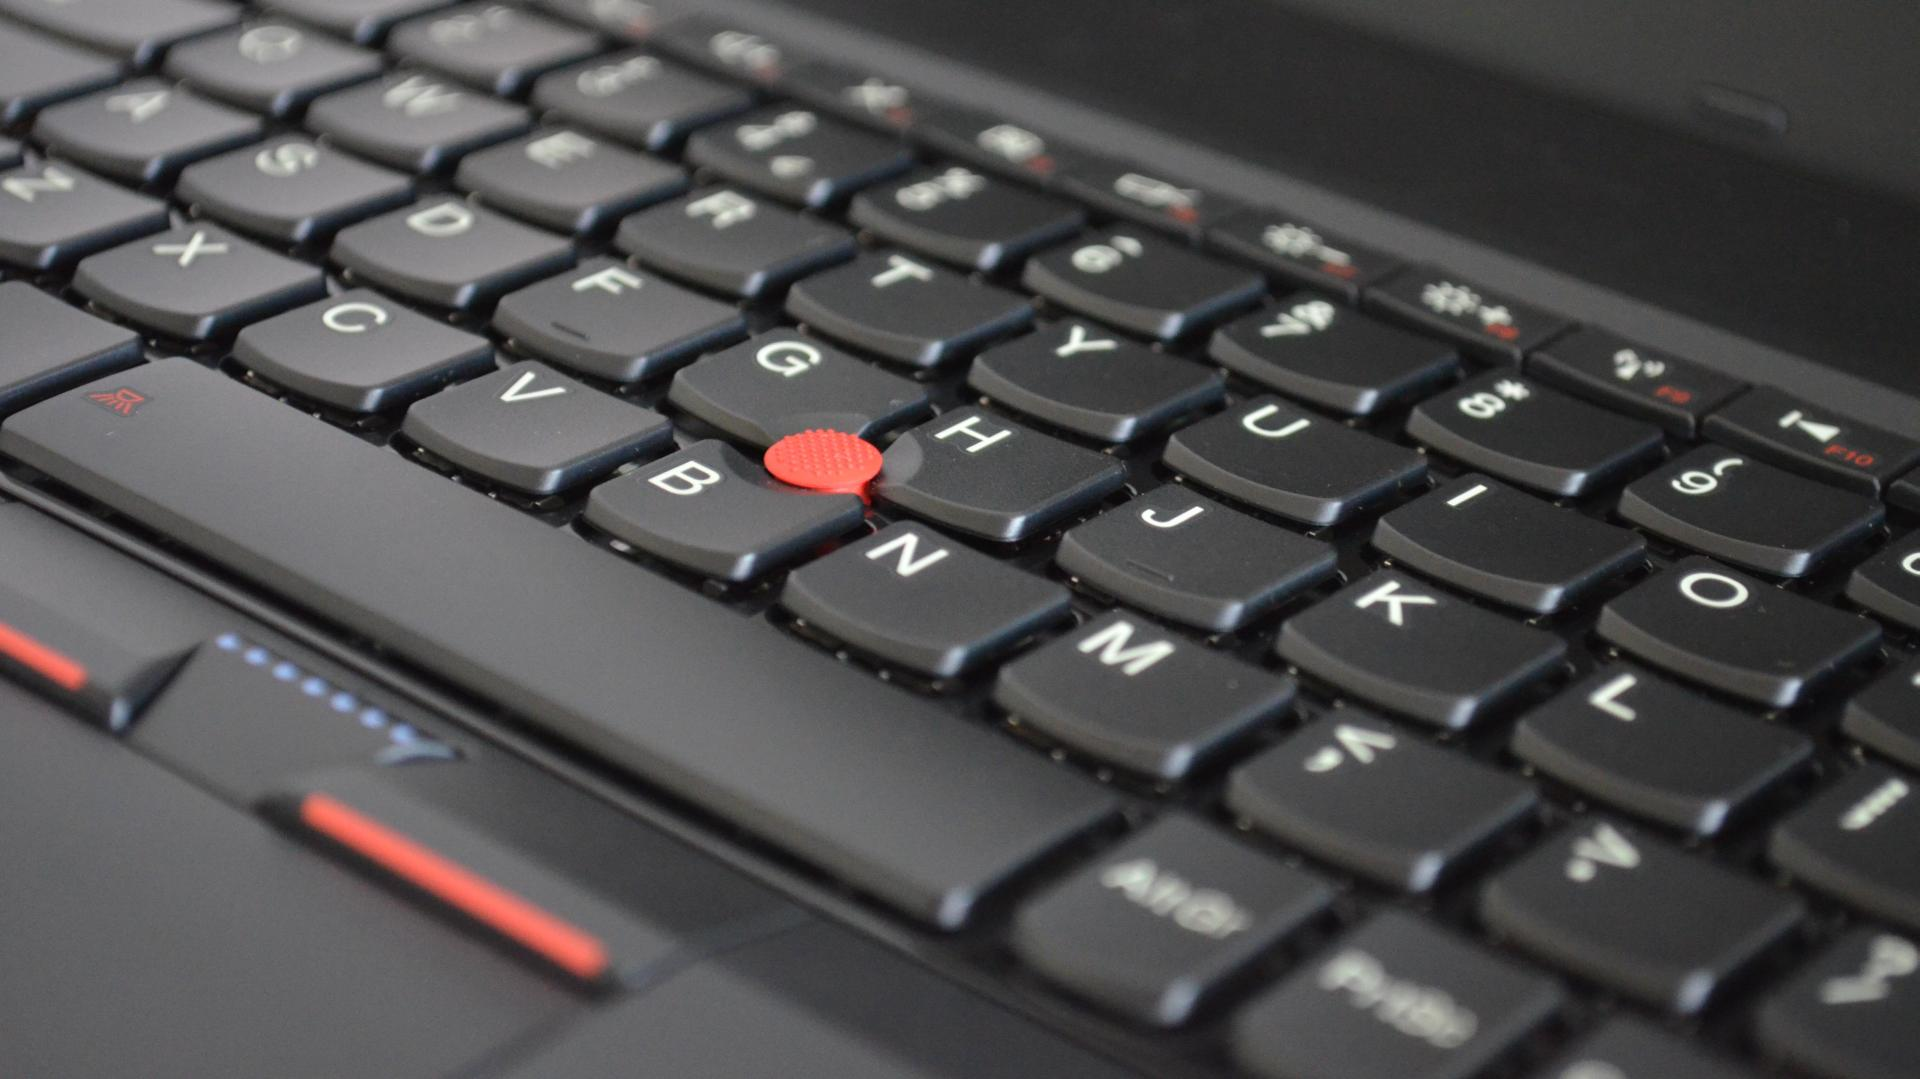 Lenovo Thinkpad Edge E120 – Portabilitate accesibila [REVIEW]